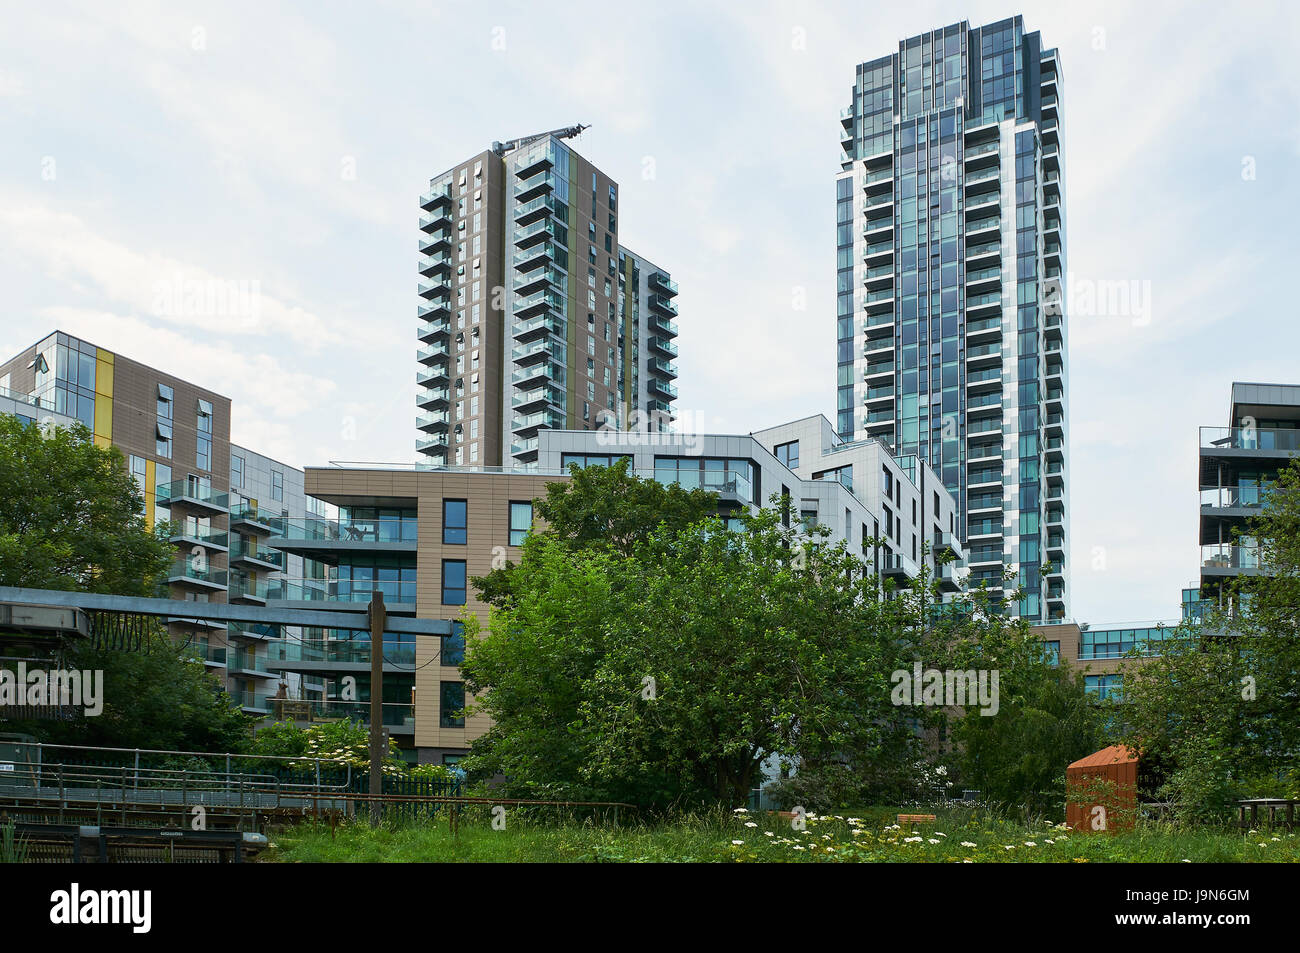 New apartments at Woodberry Down, North London UK - Stock Image